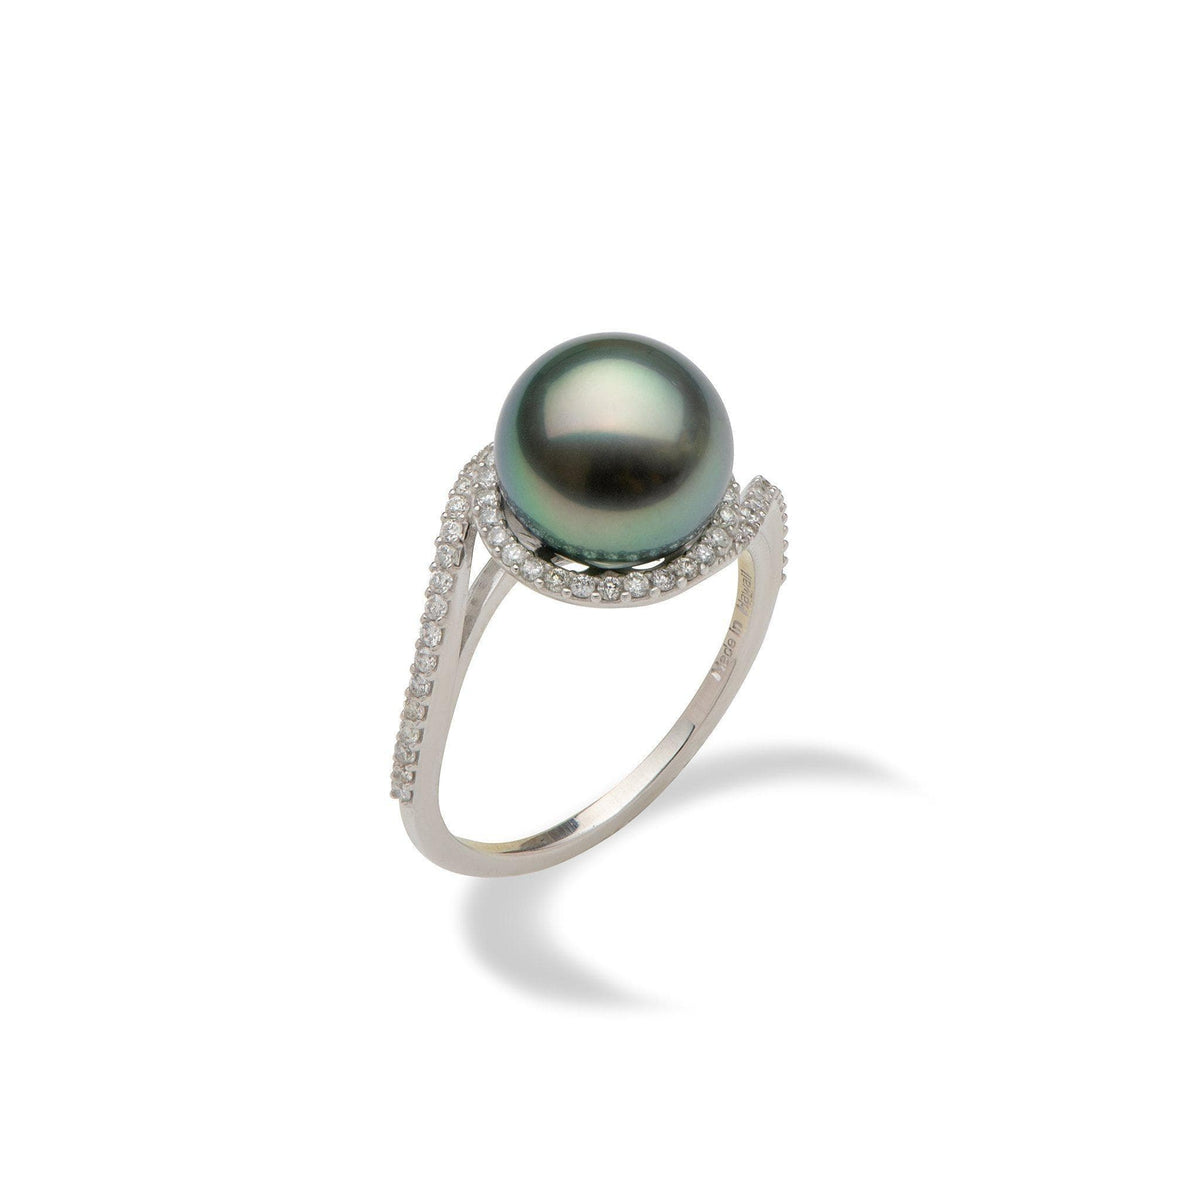 Tahitian black pearl ring in white gold with diamonds